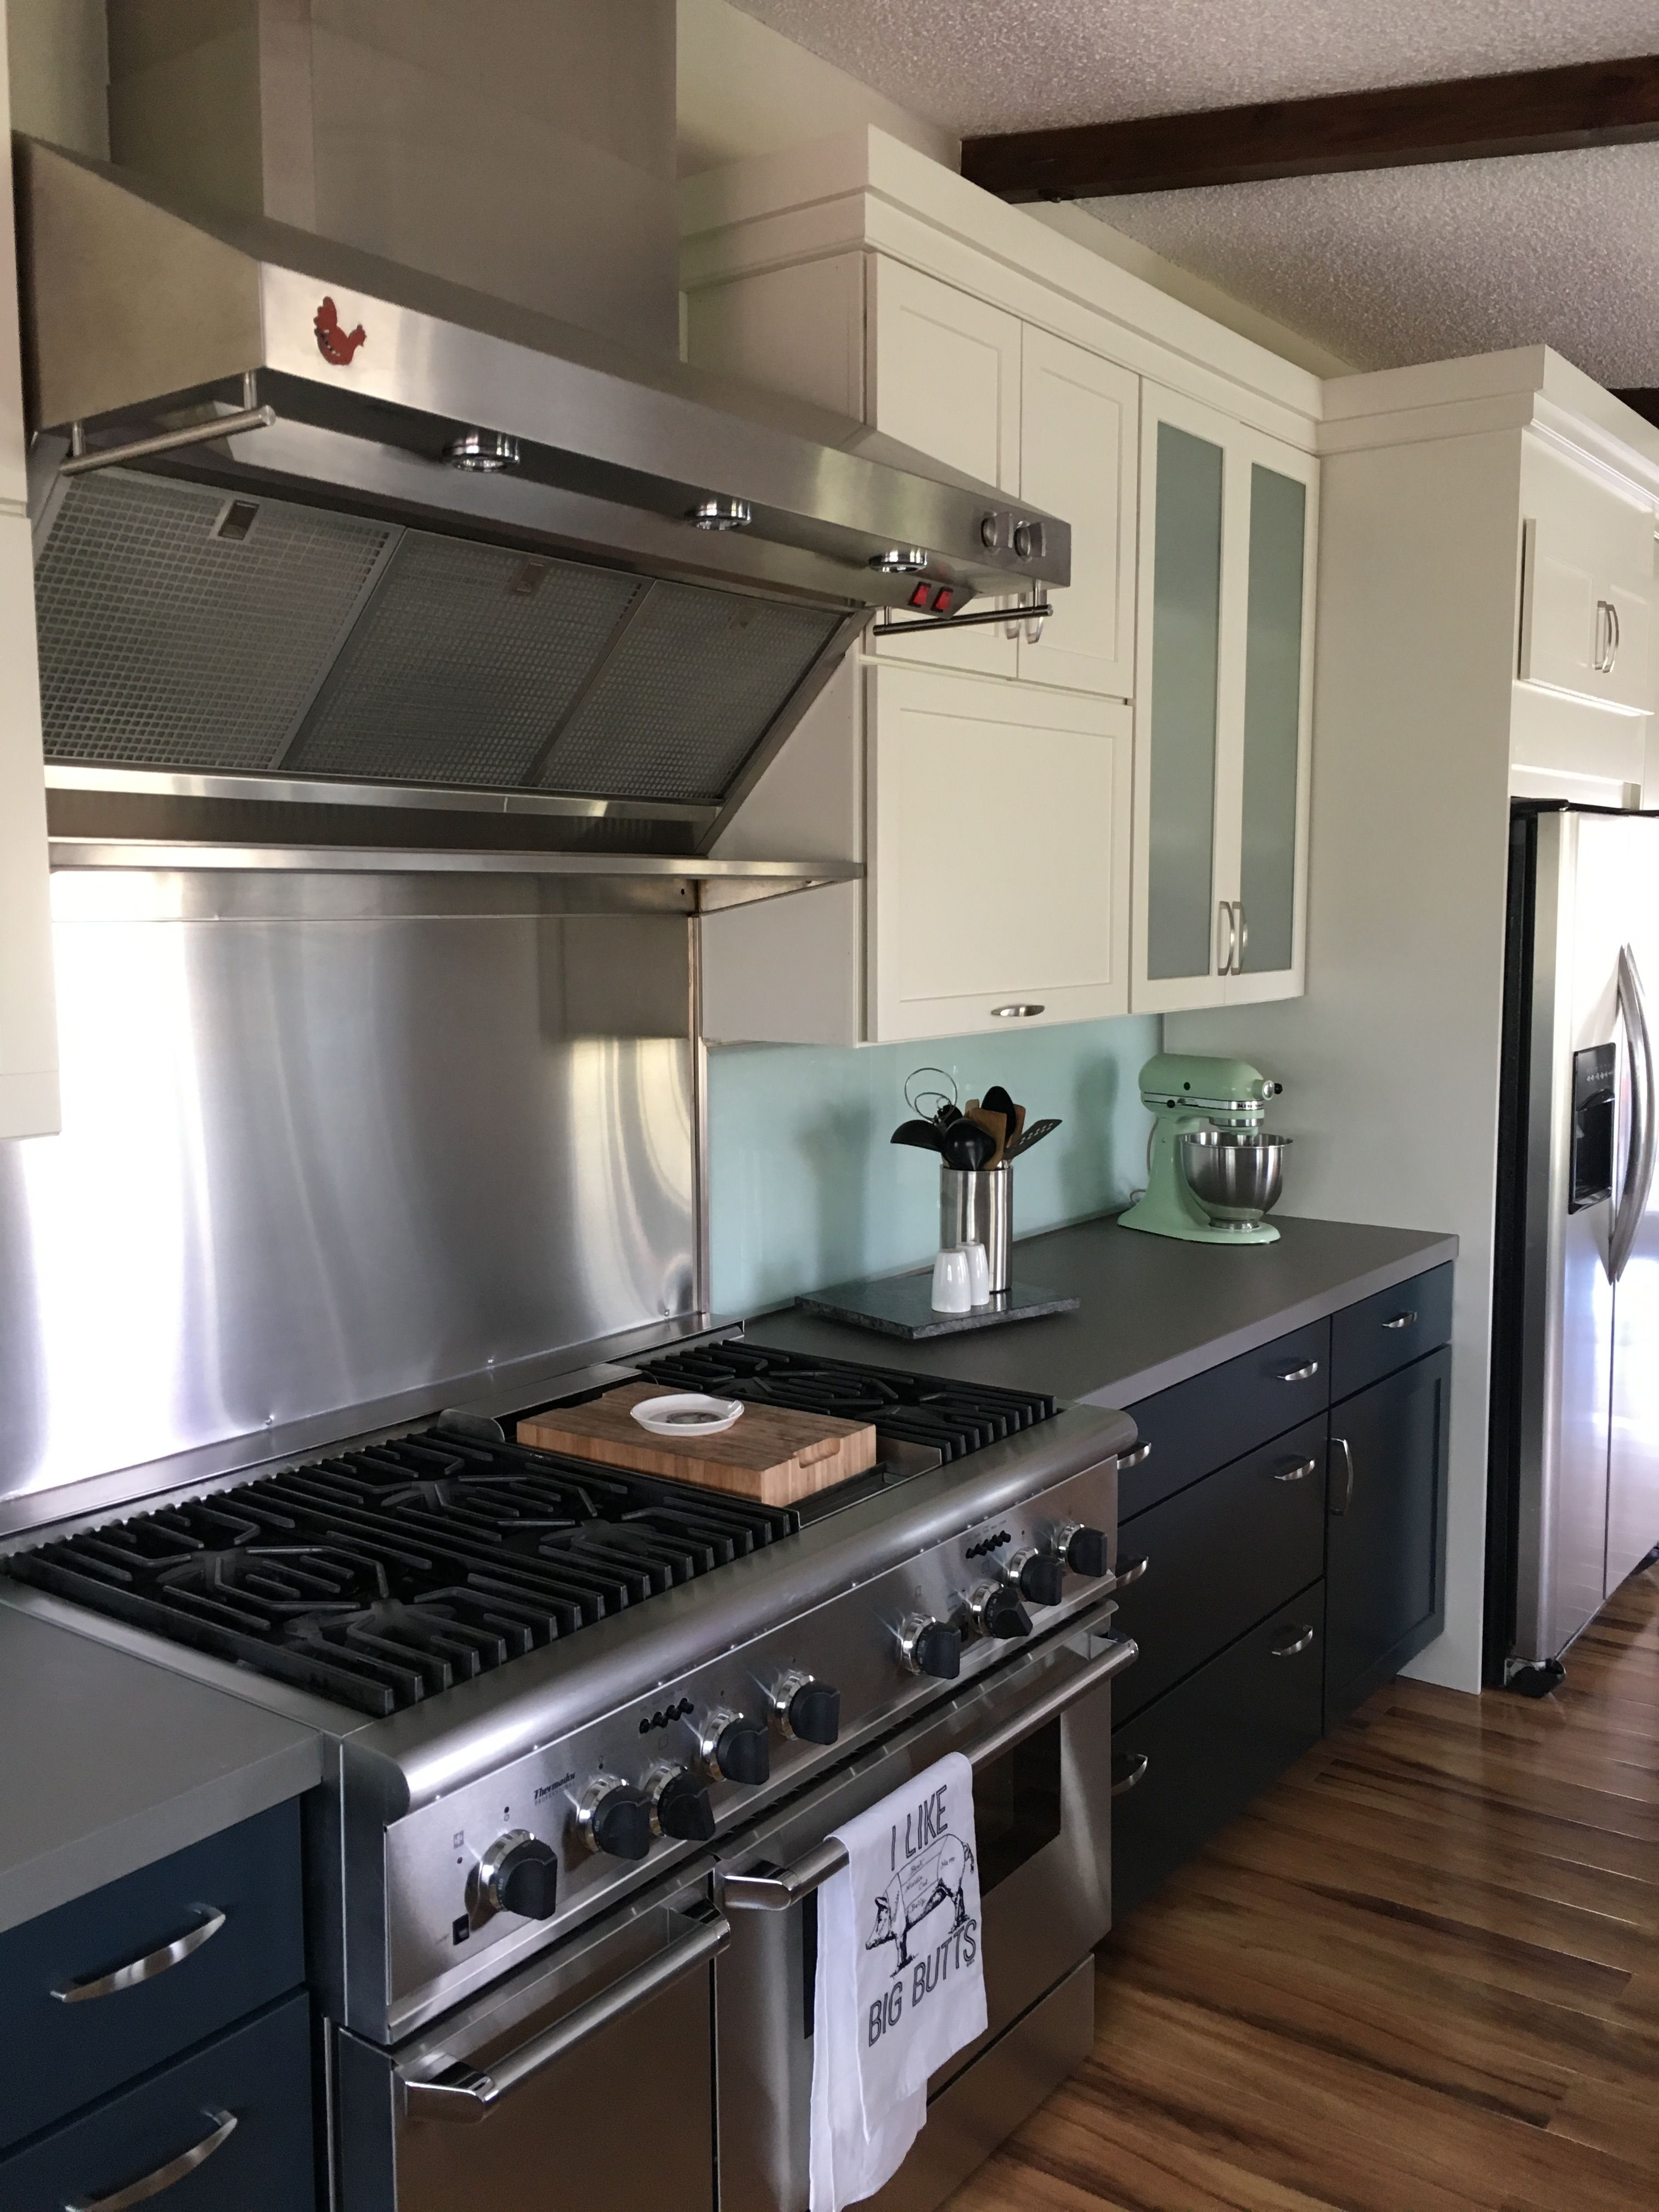 Thermador Range With Ge Monogram Series Hood Diamond Coconut Color Upper Cabinets Diamond Maritime Color Cream Kitchen Cabinets Low Cabinet Upper Cabinets